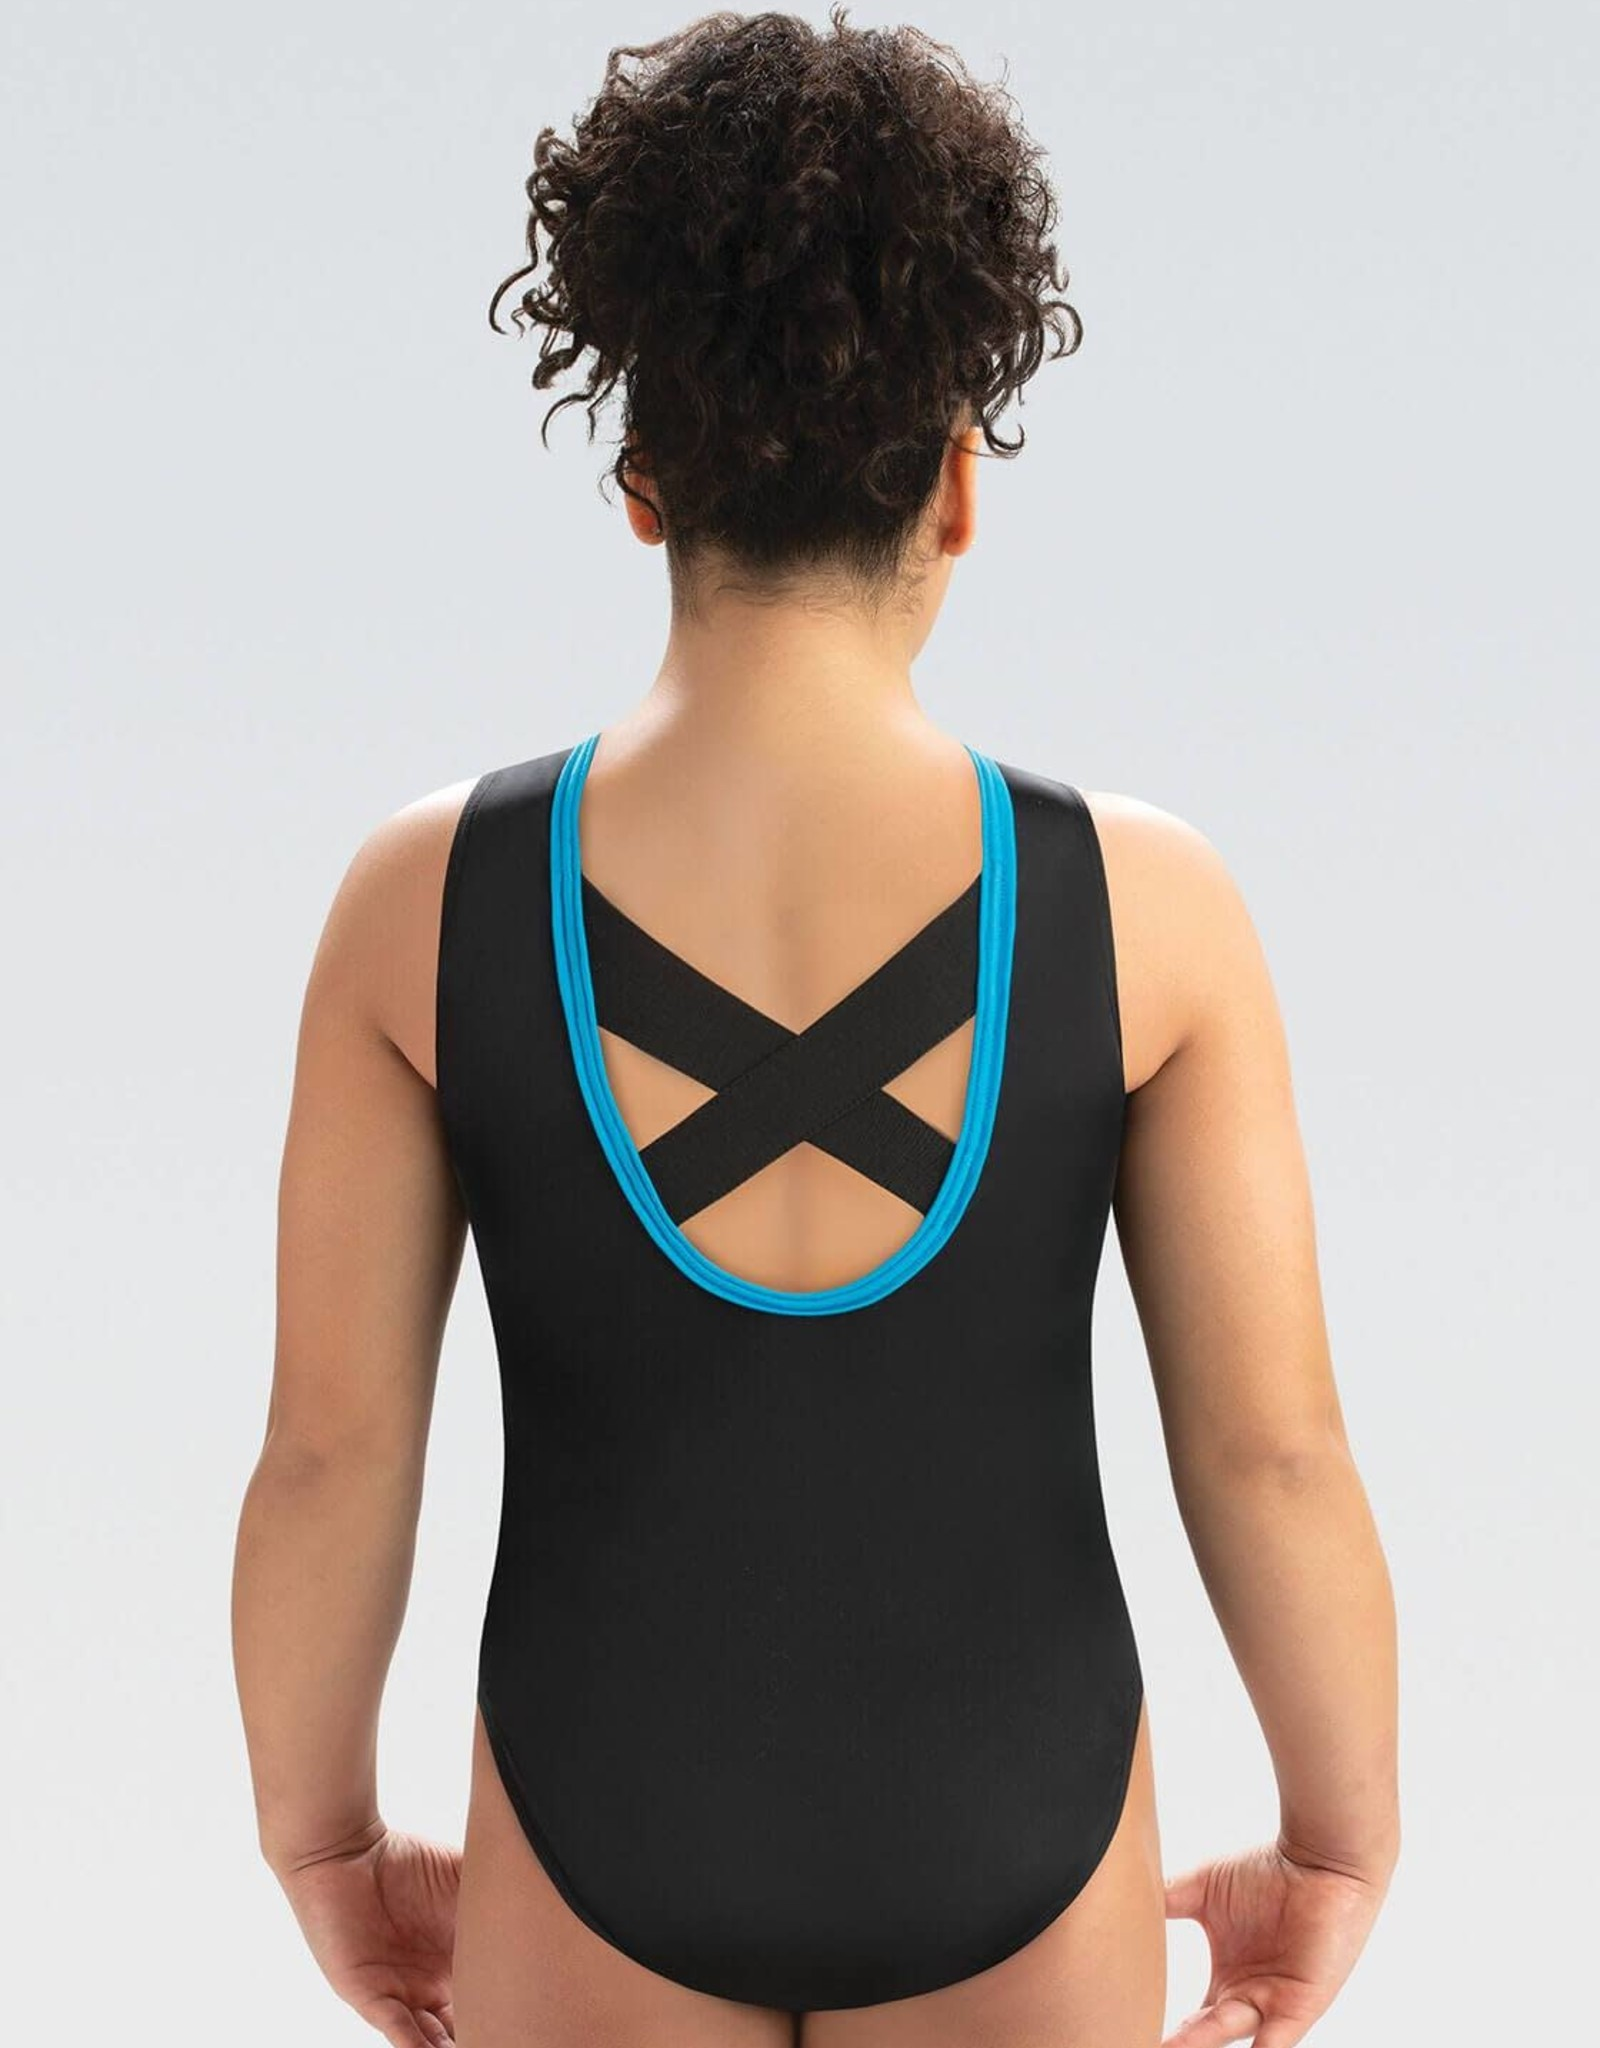 GK Elite E4221-Laurie Hernandez Collection Wild Thing Tank Leotard